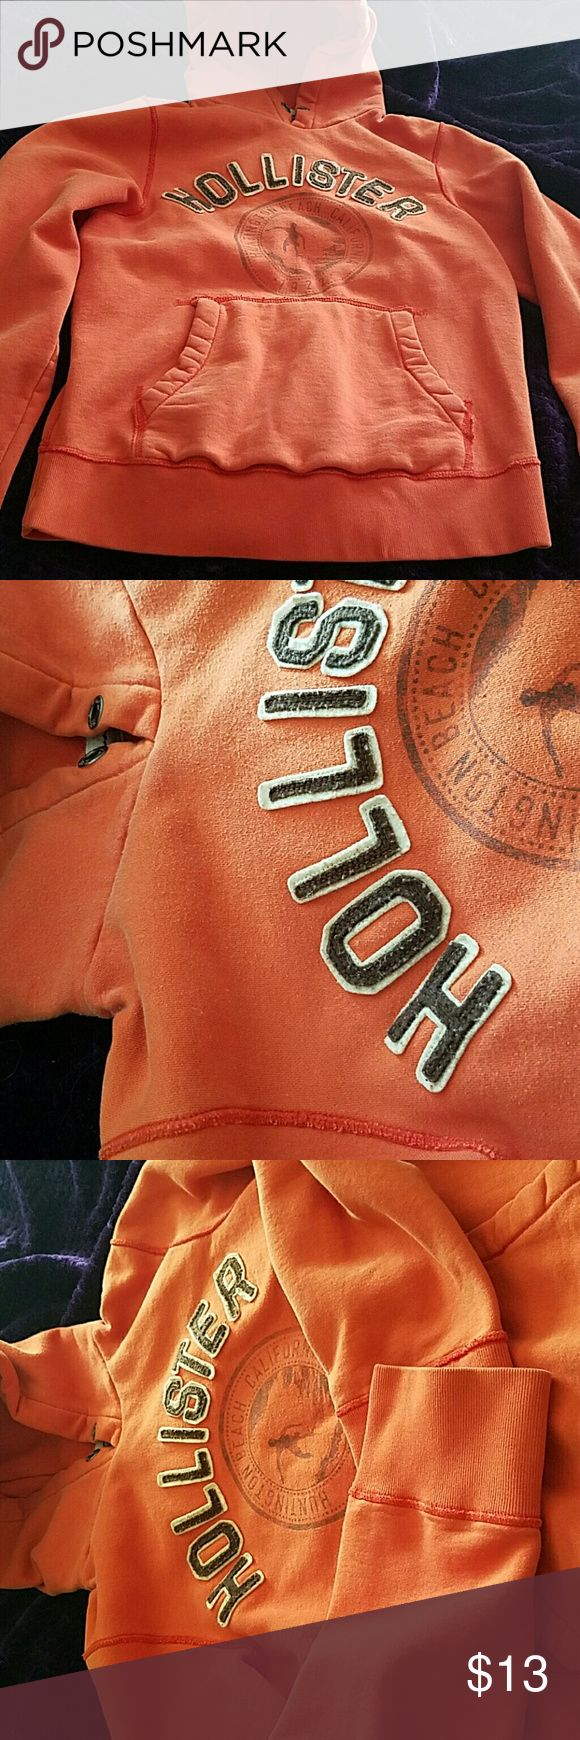 Preloved hoodie Orange hoodie, String is missing in the hood, very good pretty loved condition, heavy material, very warm and cozy... Hollister Other